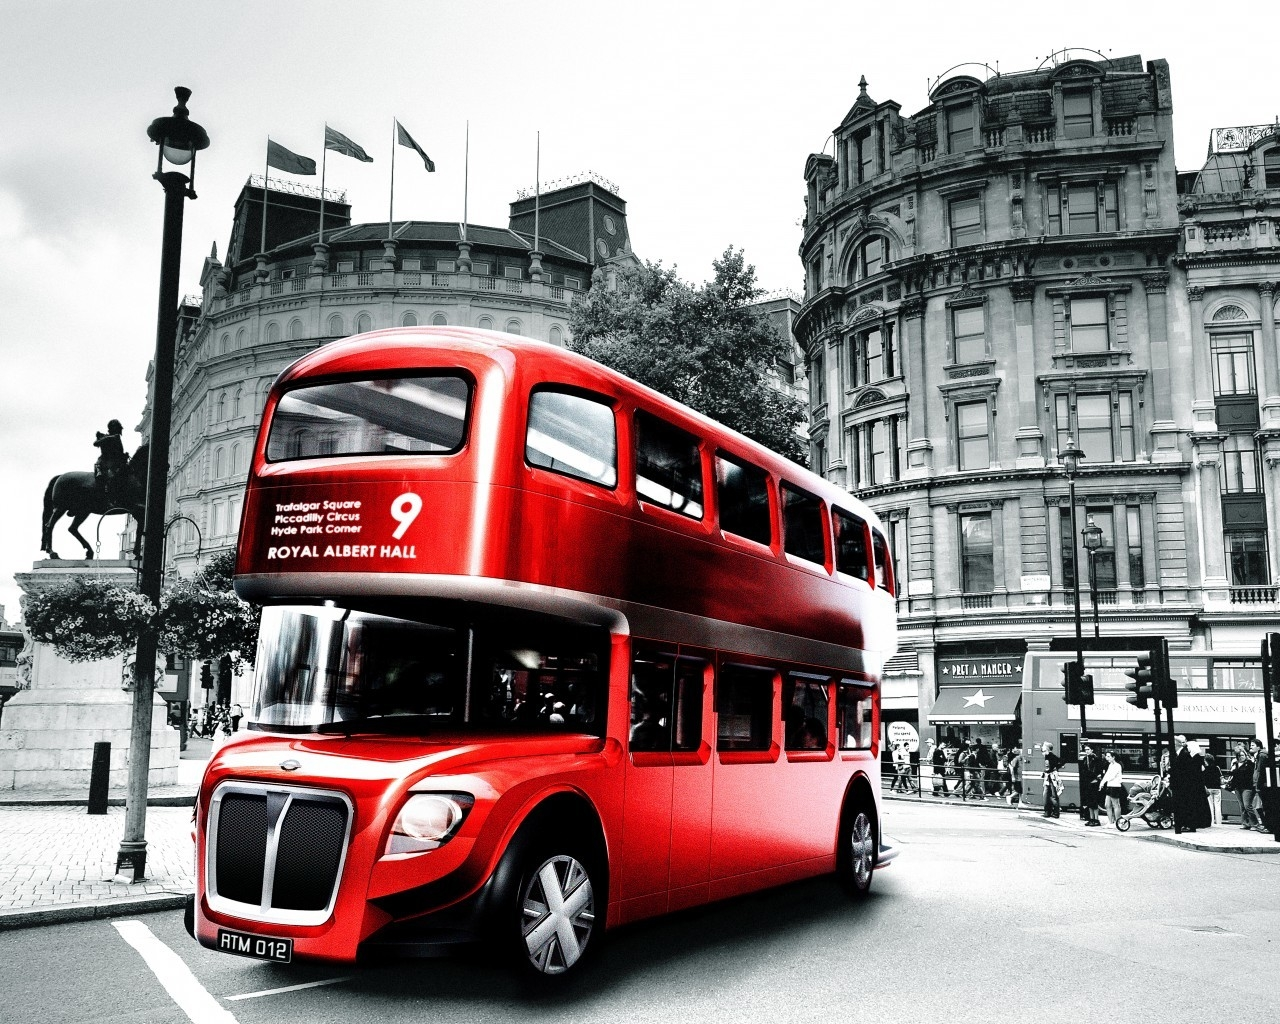 London Bus Design for 1280 x 1024 resolution